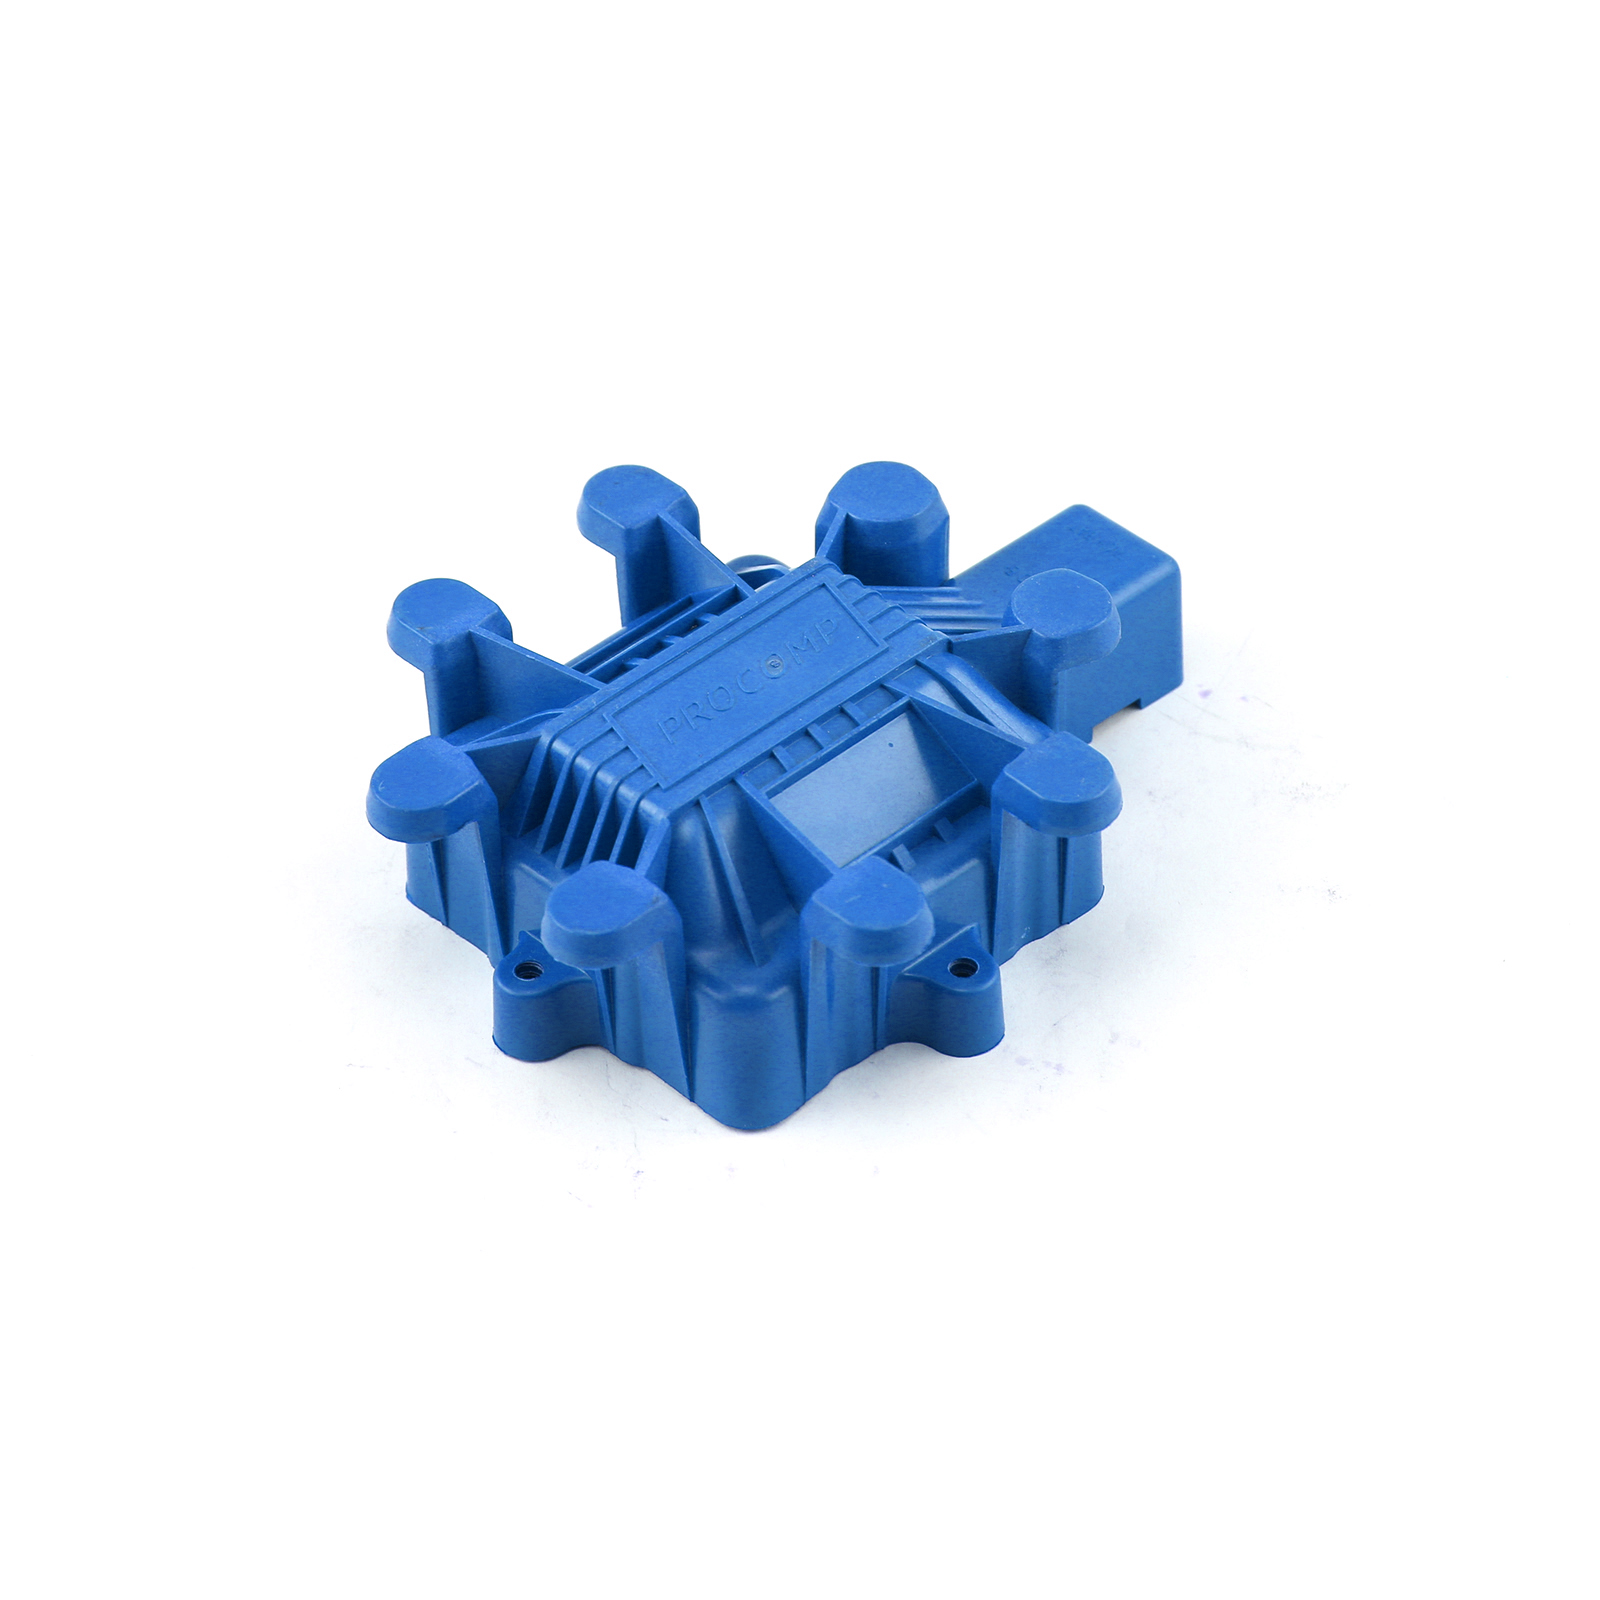 Thunder Series HEI Distributor Coil Cover Only - Blue